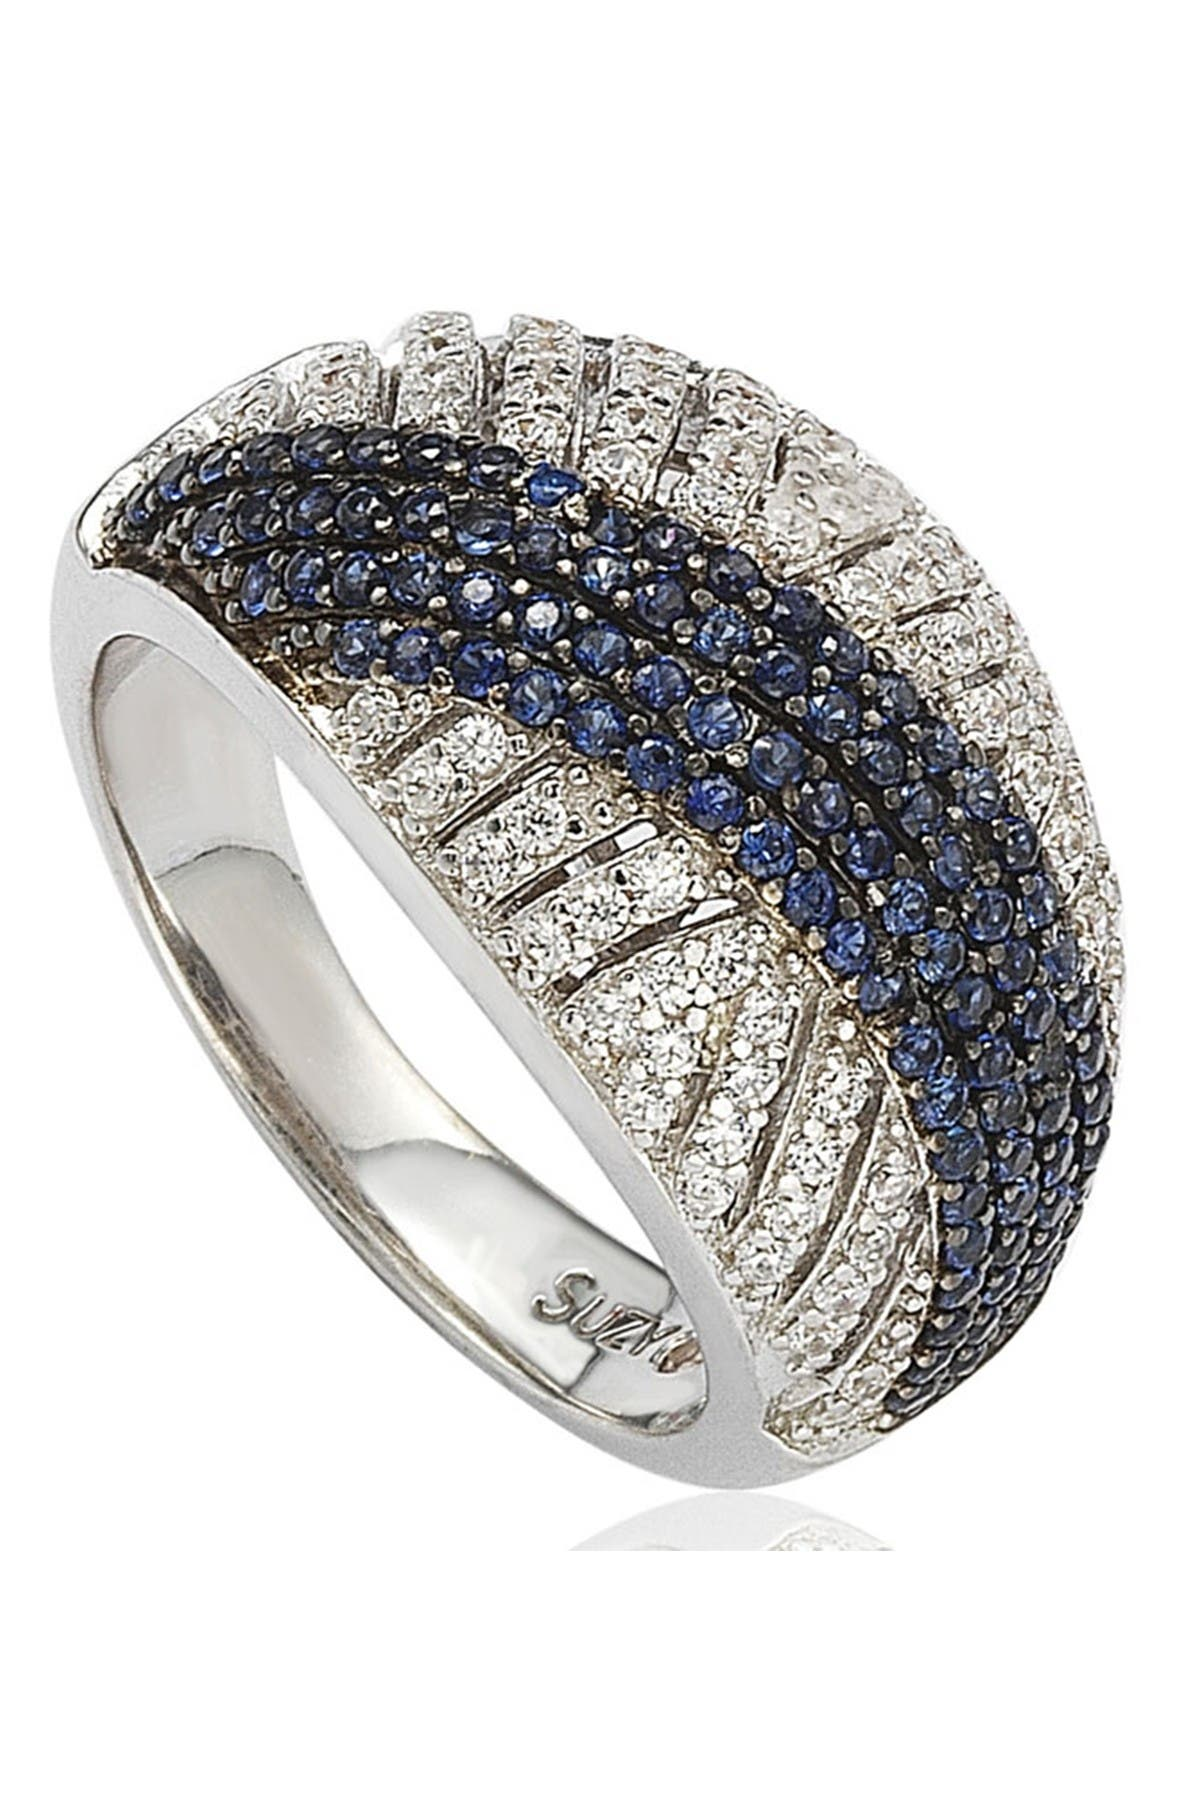 Image of Suzy Levian Sterling Silver Blue Sapphire & CZ Ring